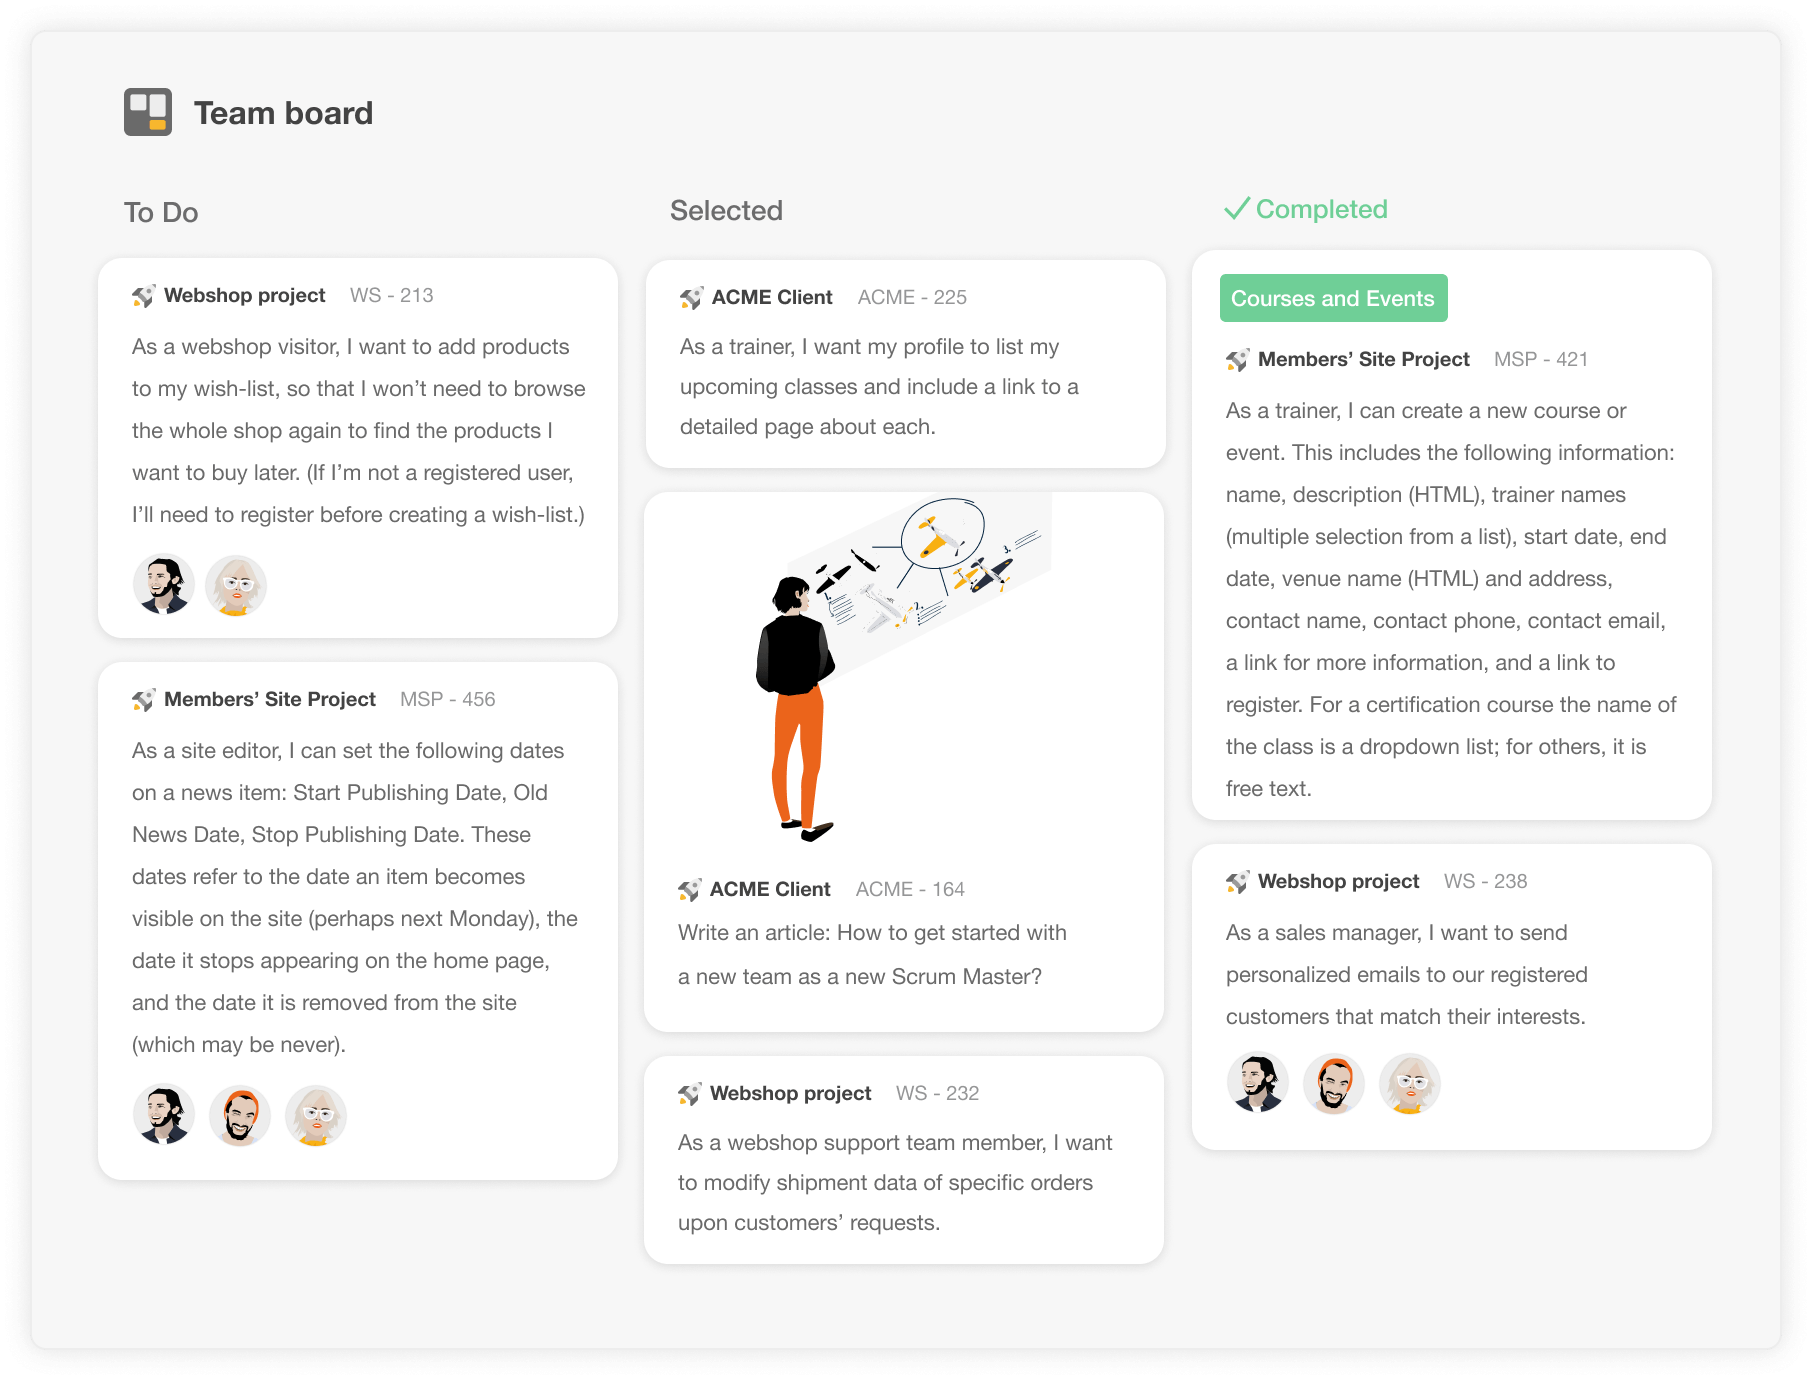 Combine multiple projects into one team board